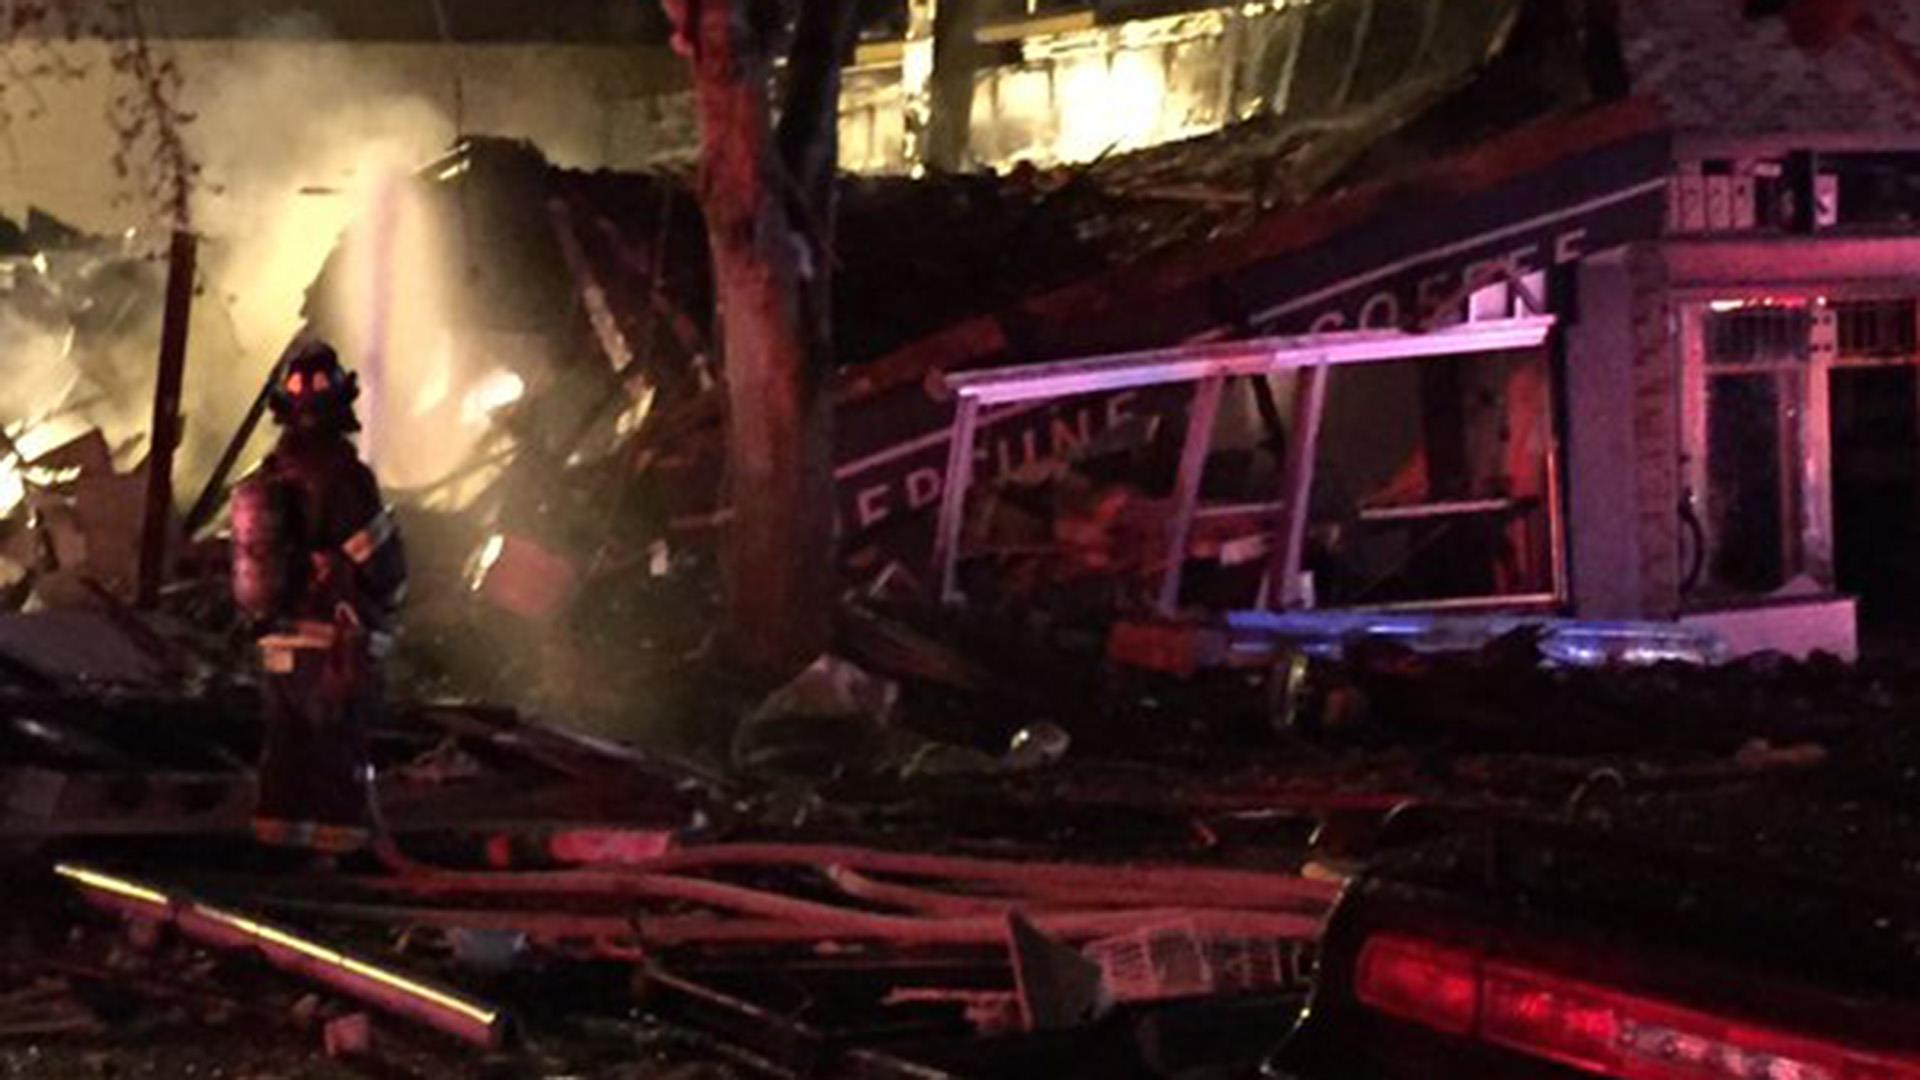 Scenes of Devastation After 'Massive' Explosion Rocks Seattle